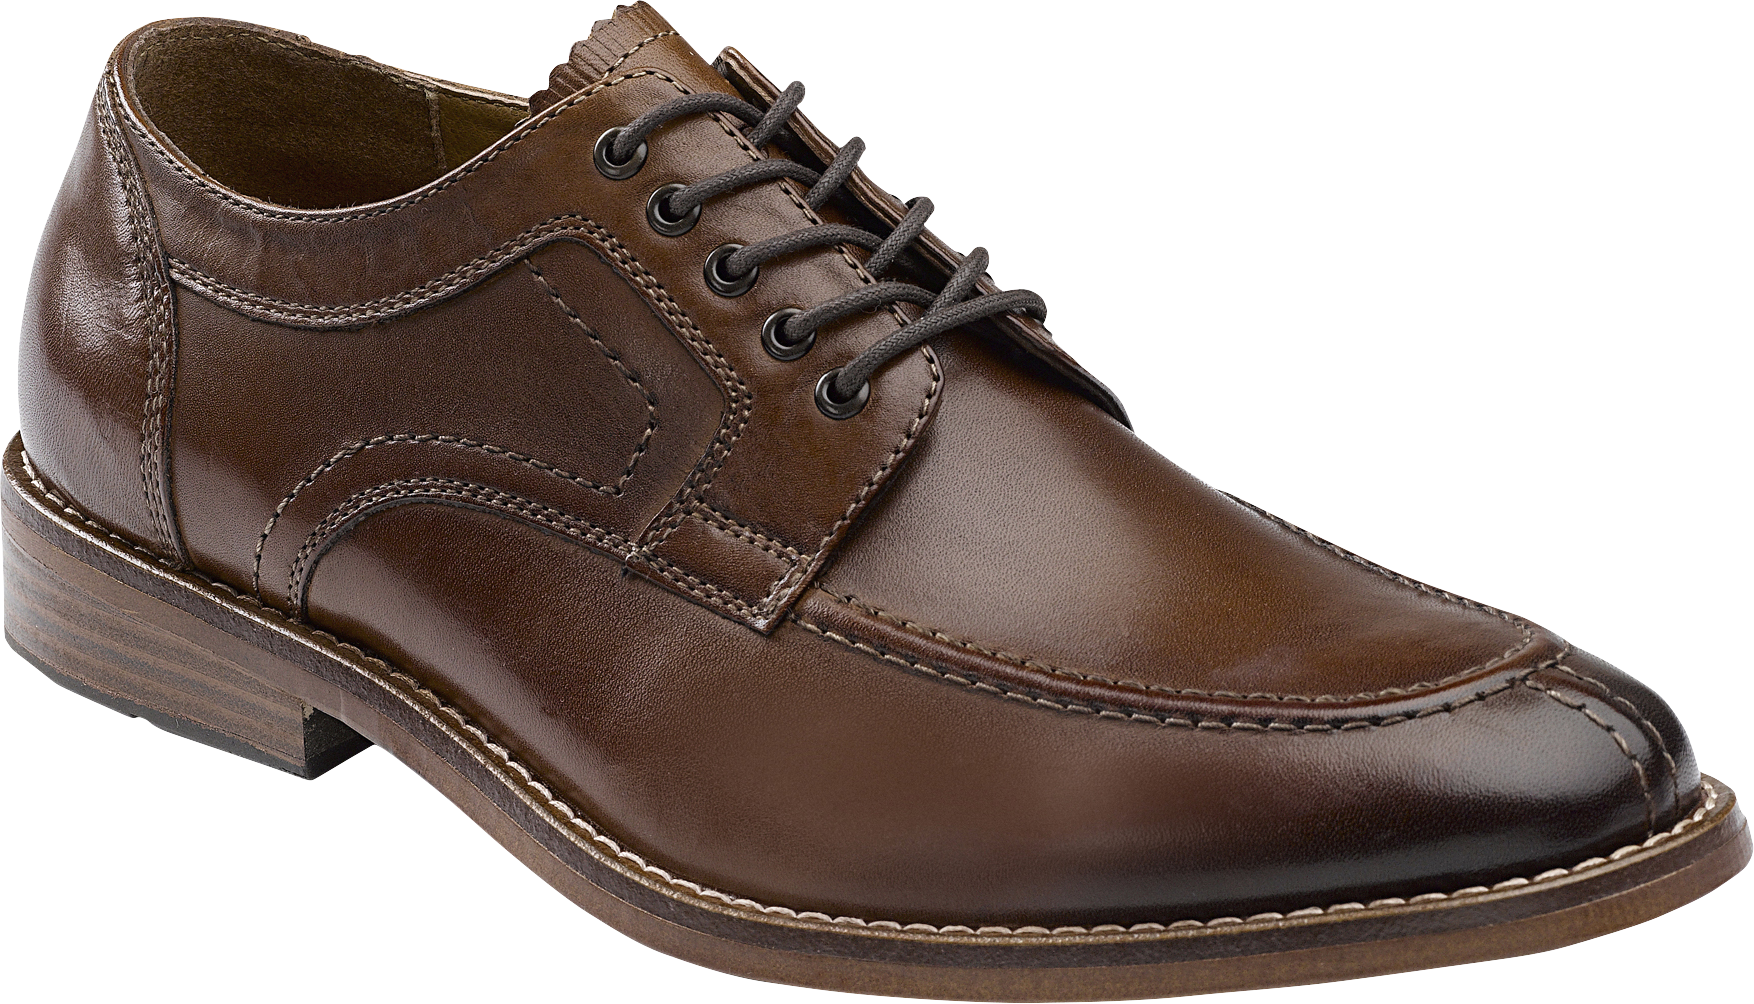 595b2057ee2 G. H. Bass Carsen Oxfords CLEARANCE - All Clearance